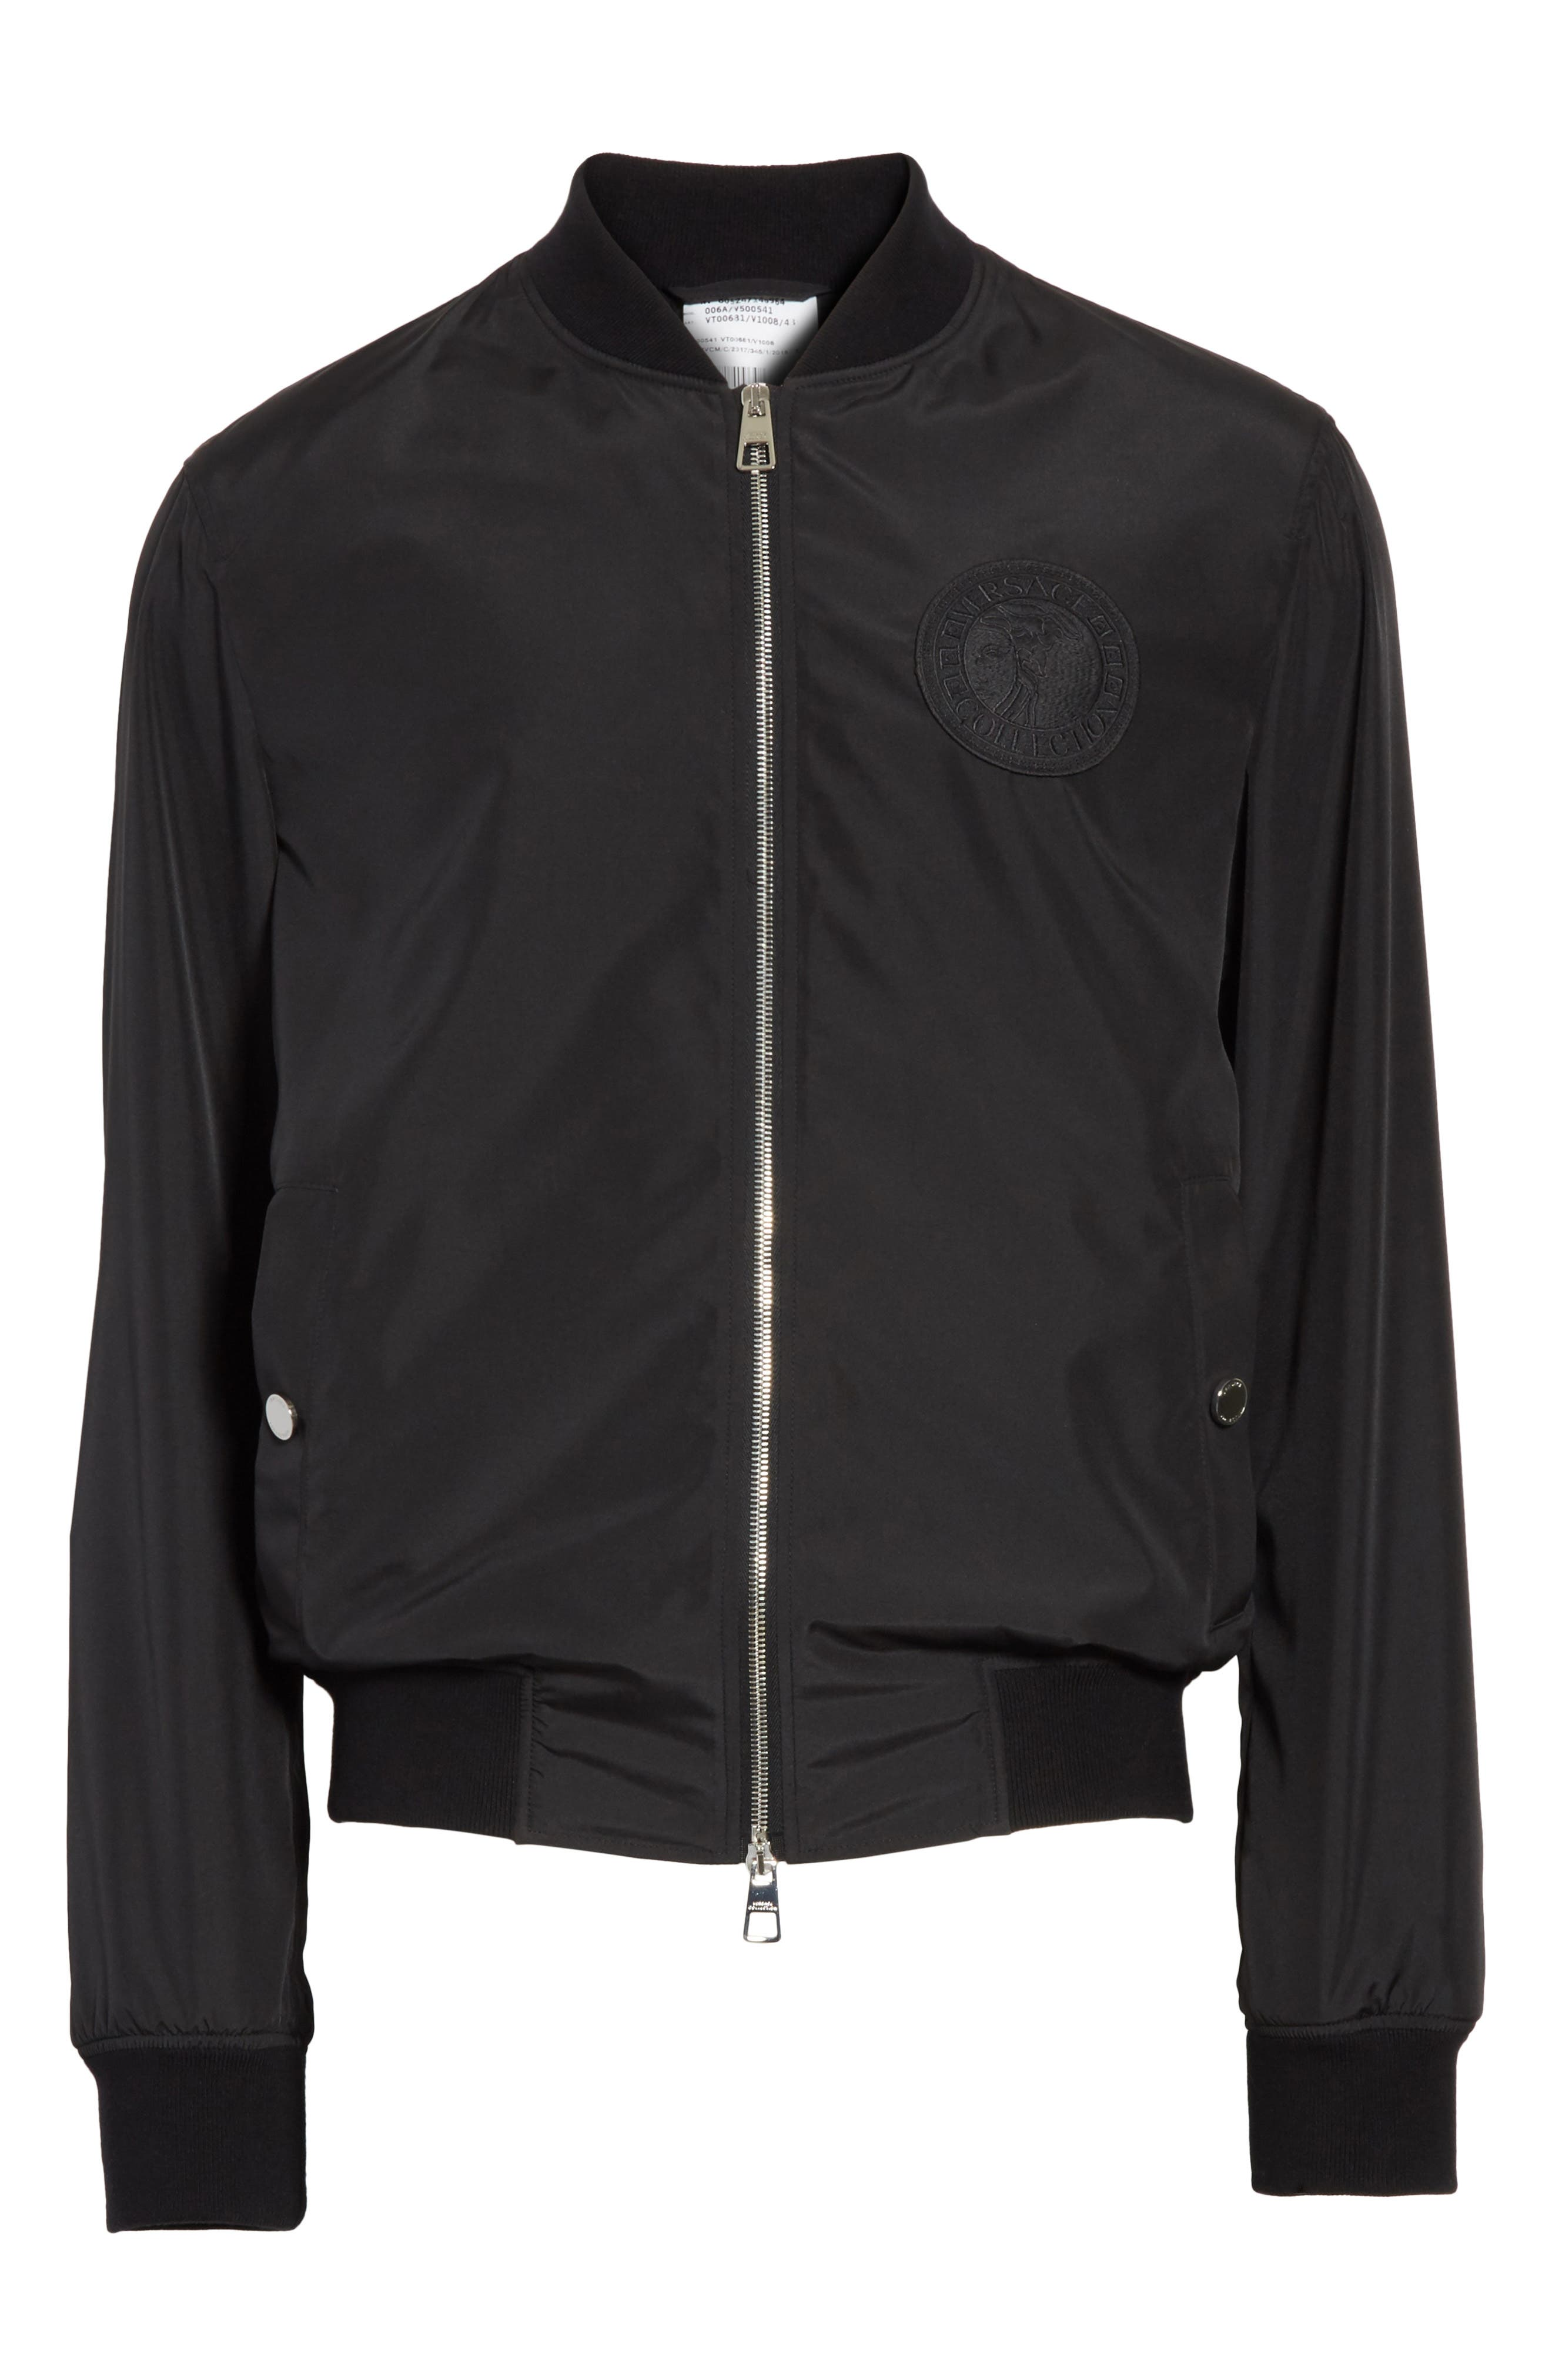 Bomber Jacket with Patch,                             Alternate thumbnail 5, color,                             130